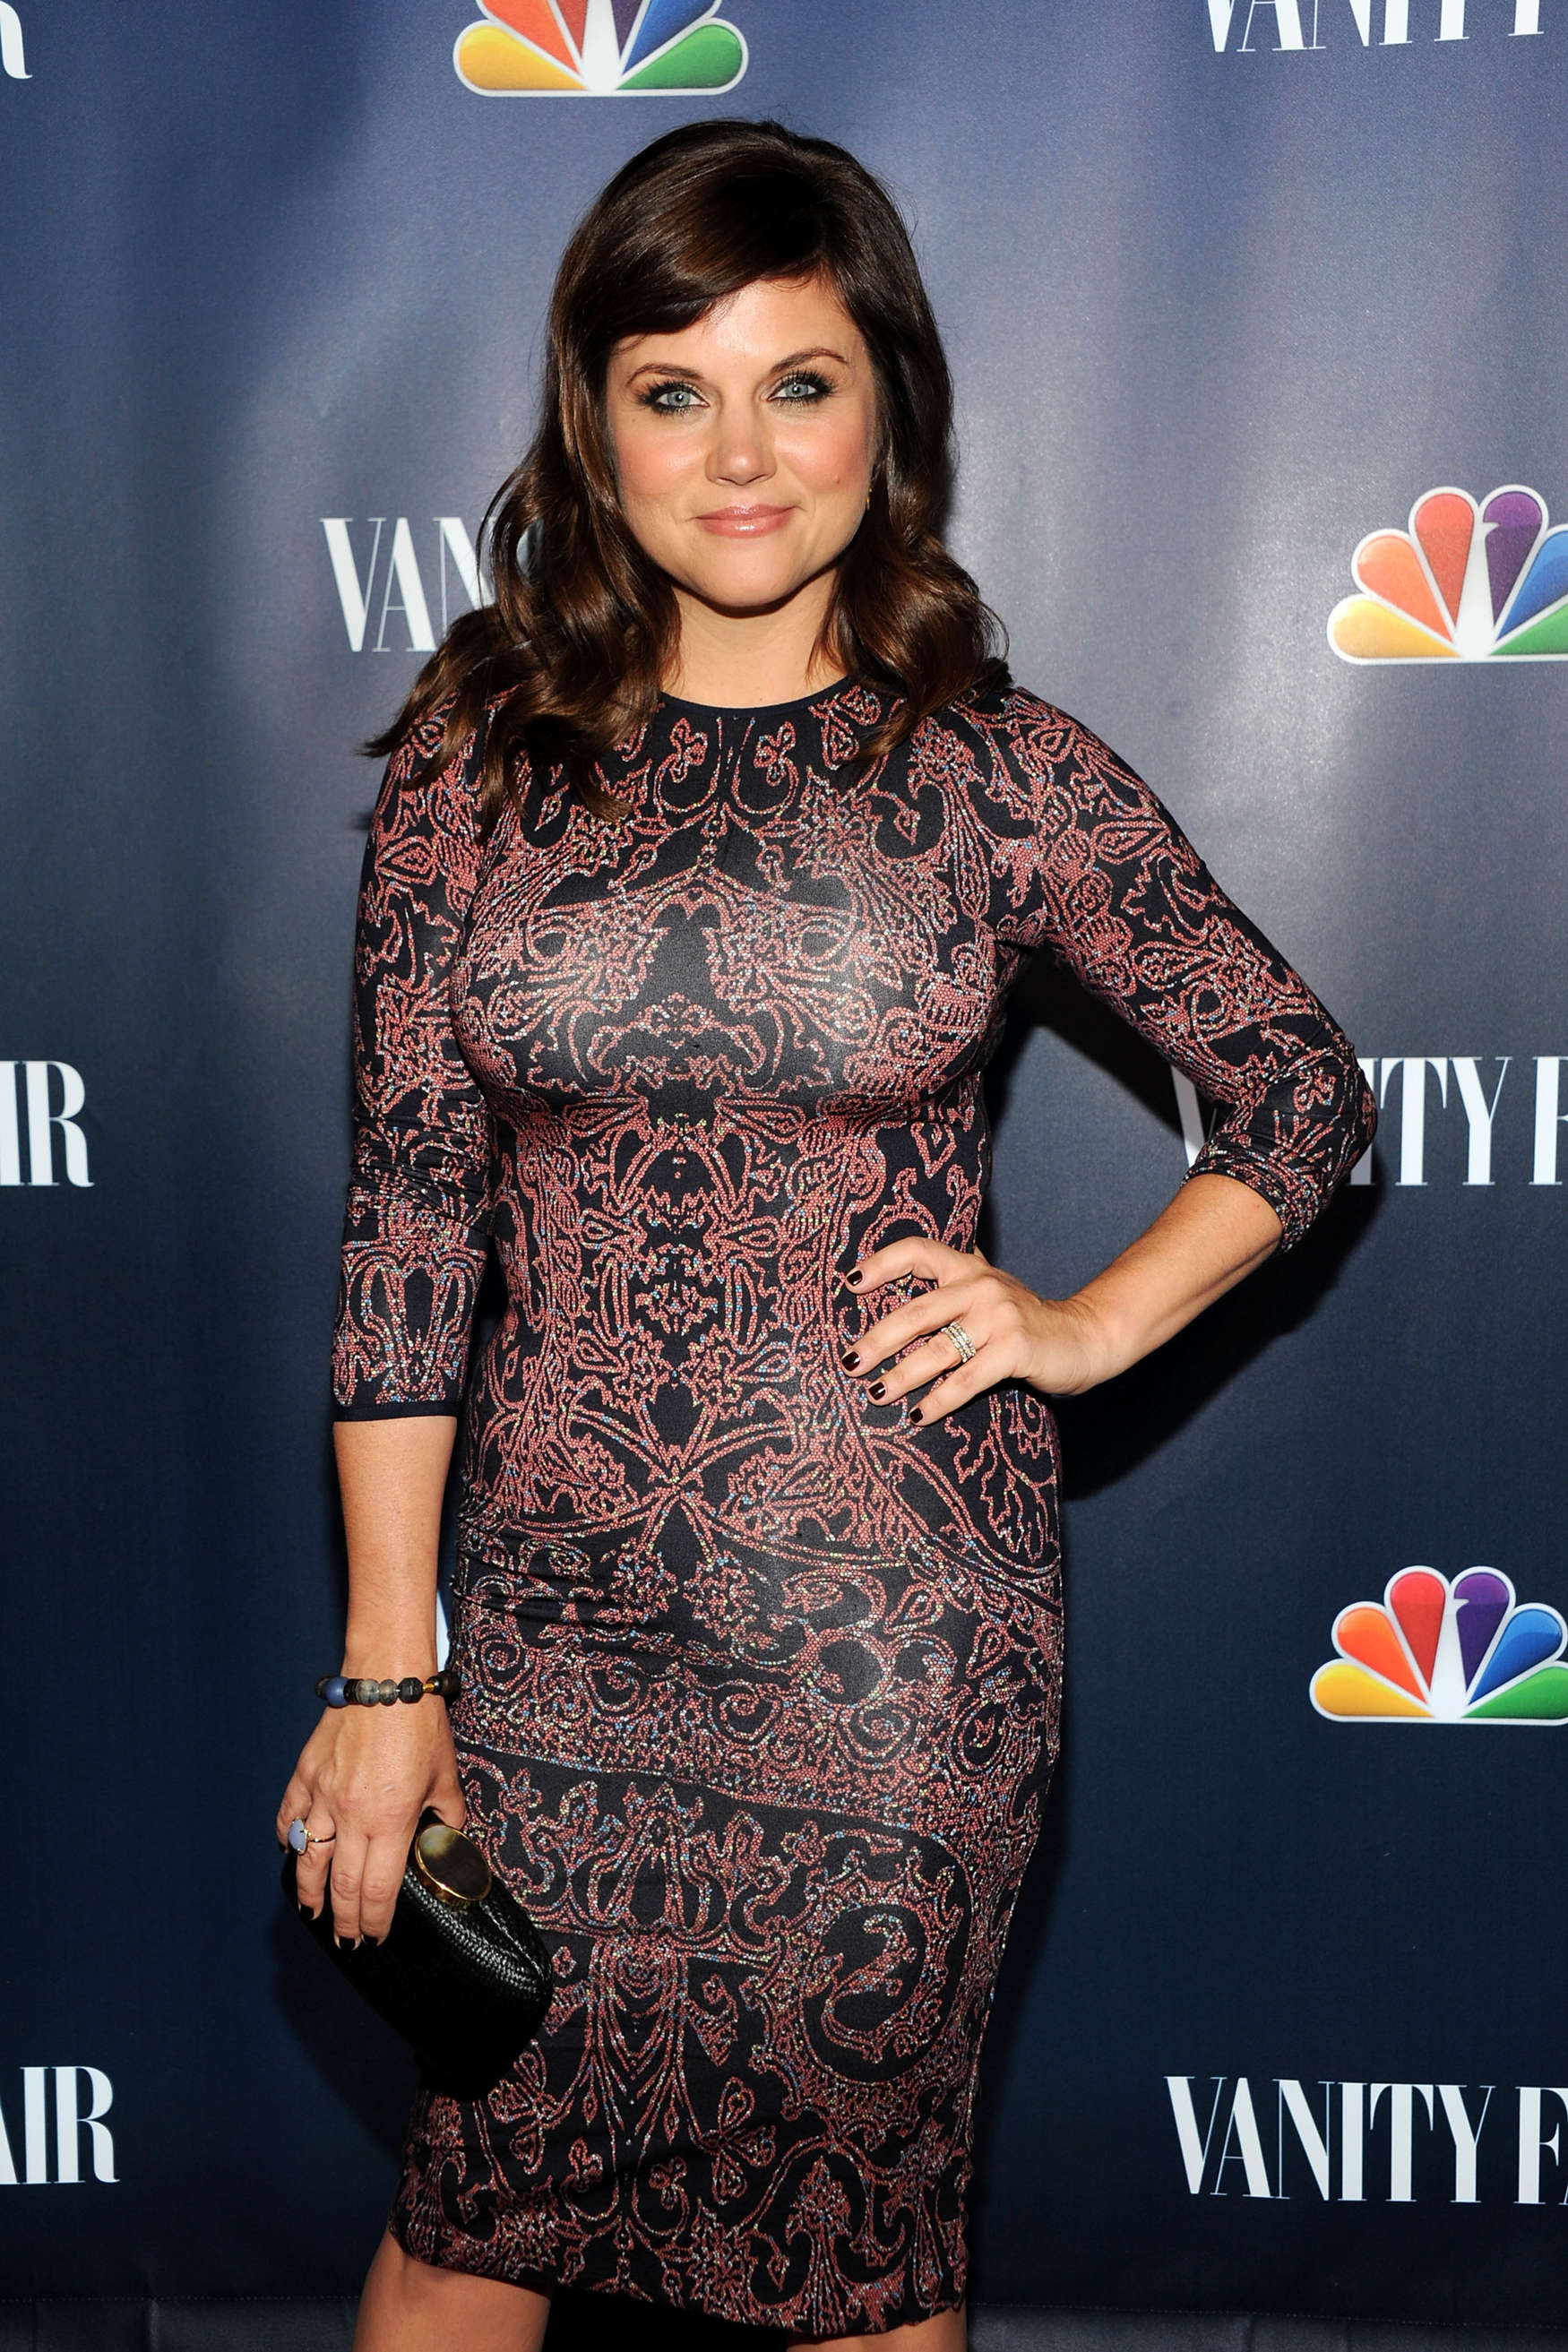 Tiffani Thiessen at Vanity Fair NBCs Fall Launch Party-1